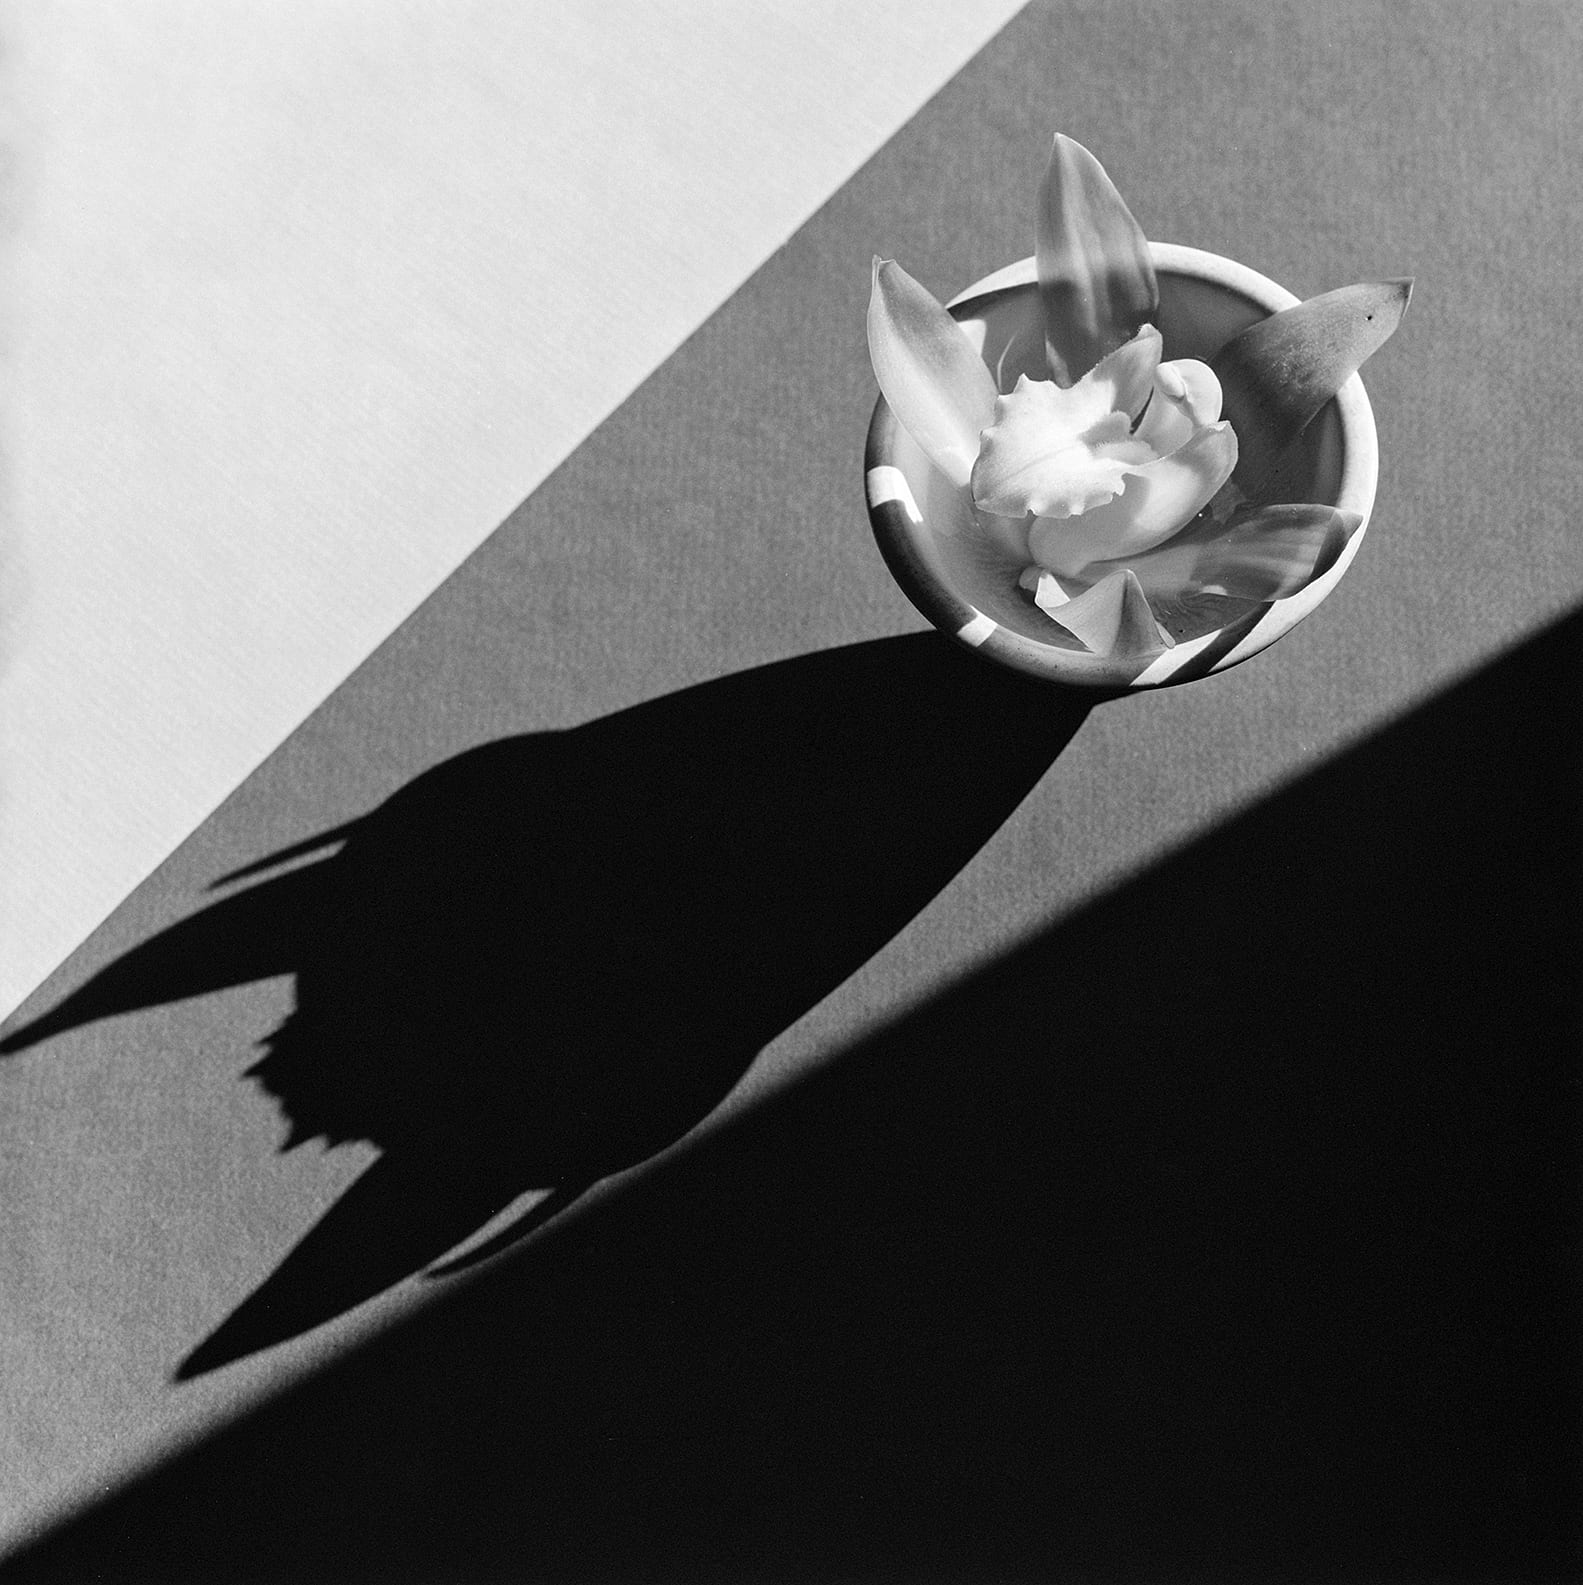 Orchid, 1987 © Robert Mapplethorpe Foundation / The J. Paul Getty Museum